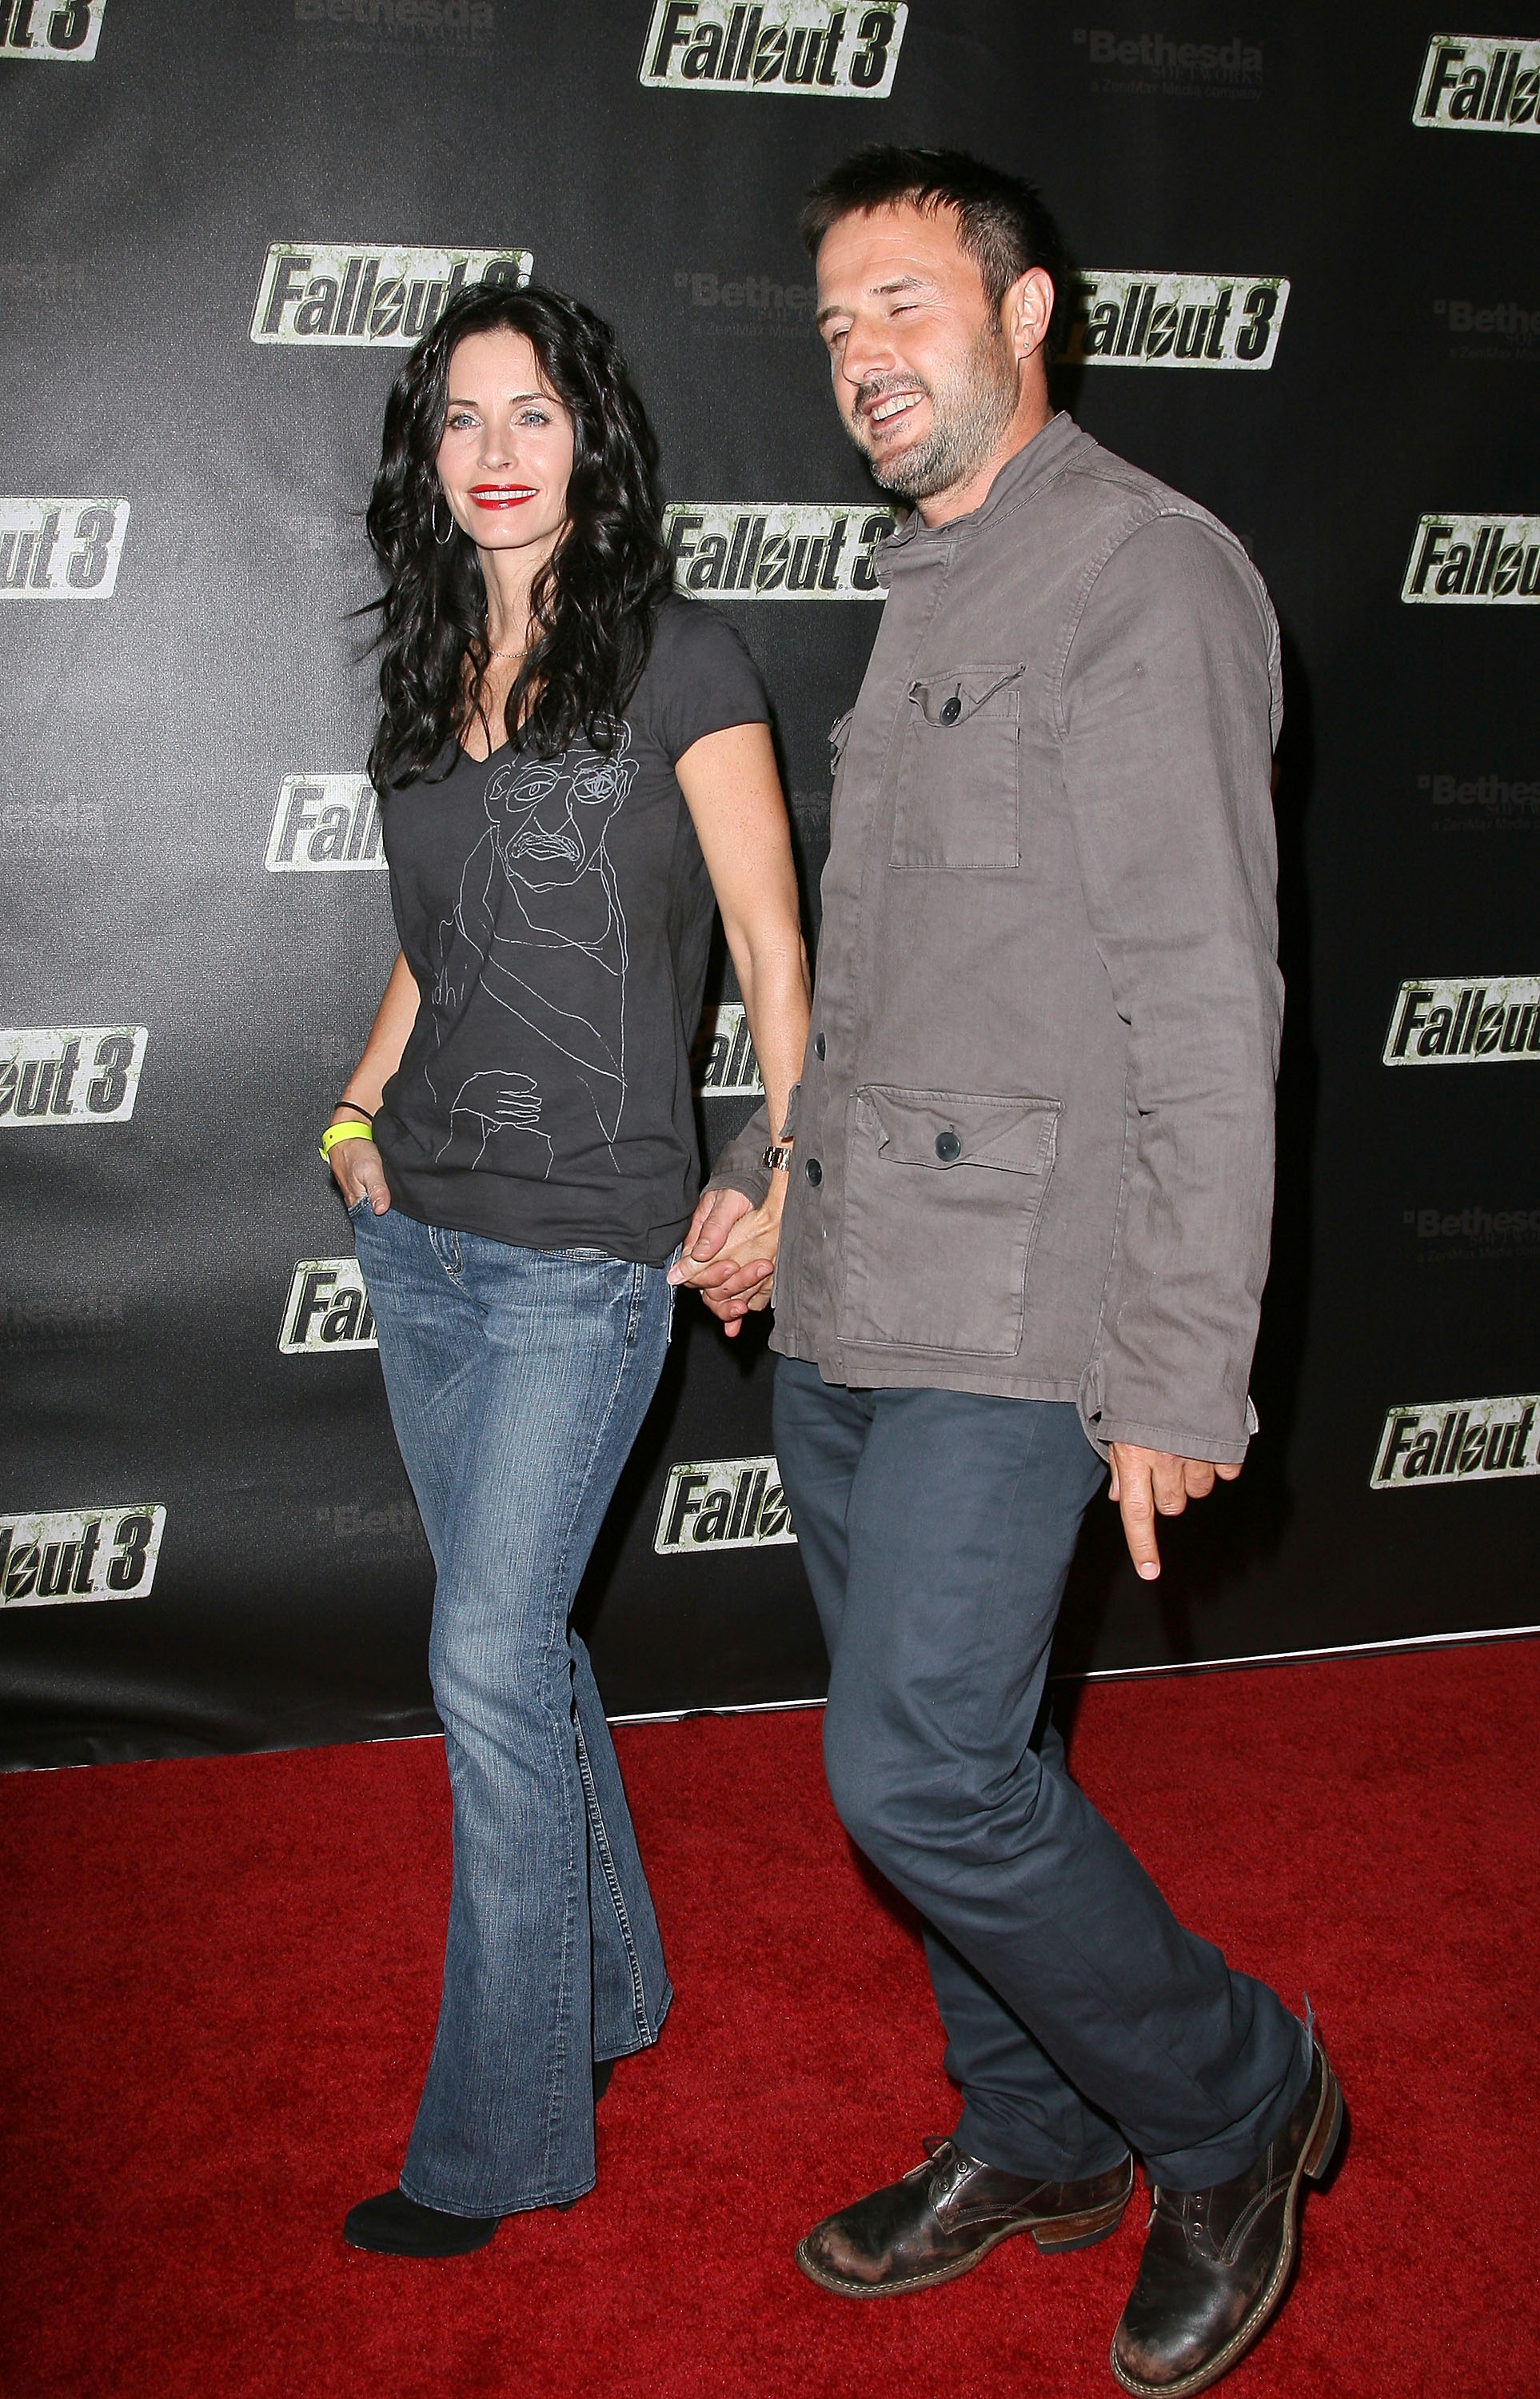 55013_Celebutopia-Courteney_Cox-Launch_Party_for_Fallout_3_videogame-05_122_807lo.jpg